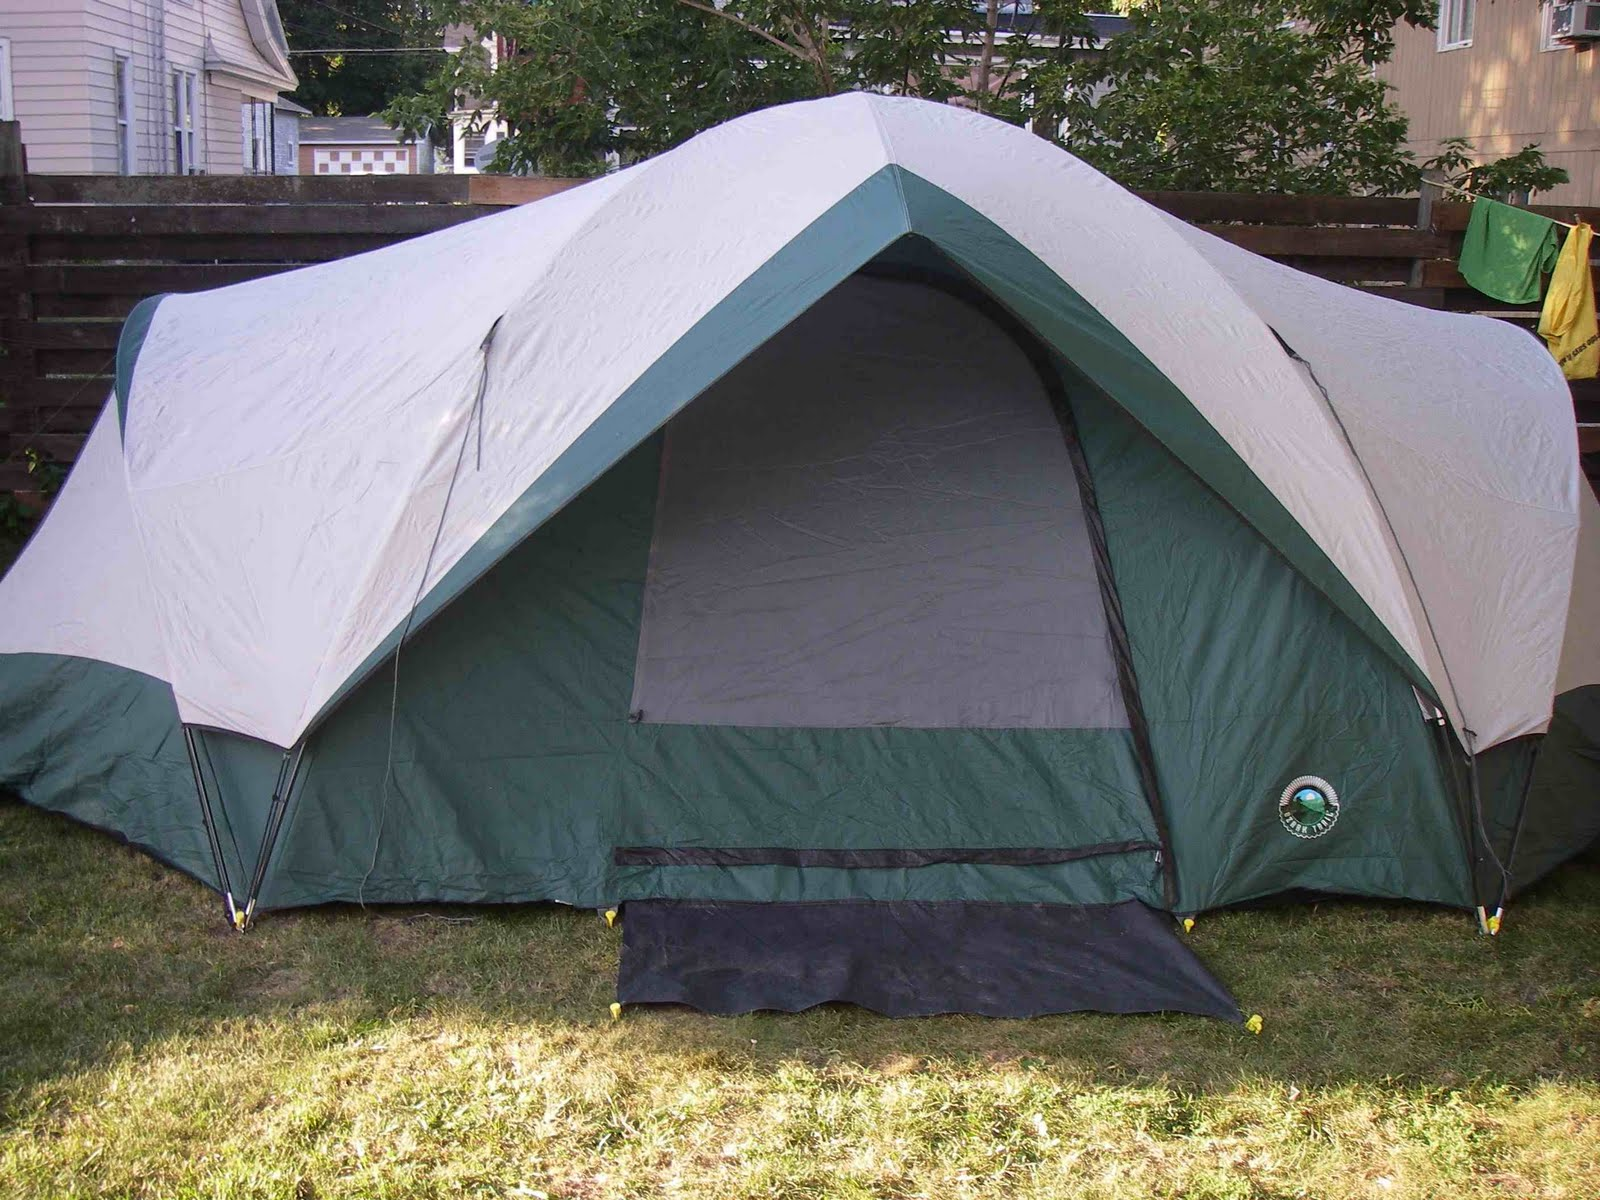 Ozark Trail // 20u0027 x 13u0027 // 9-10 Person Tent & May The Forest Be With You: Ozark Trail // 20u0027 x 13u0027 // 9-10 ...